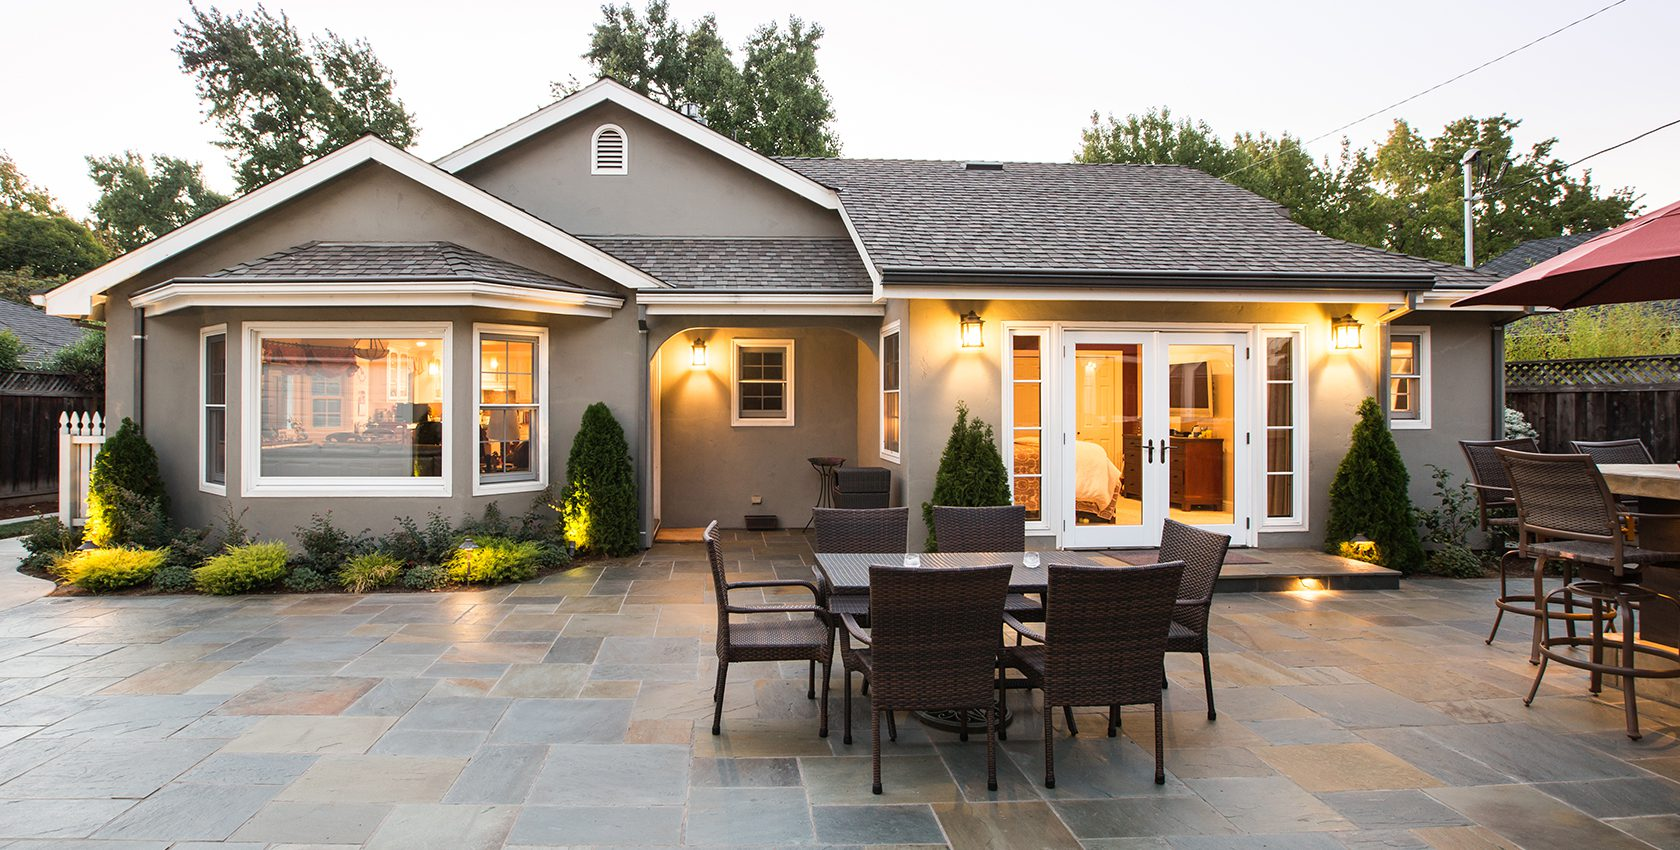 7 Exterior Renovation Ideas That Get Noticed | Case Design ...